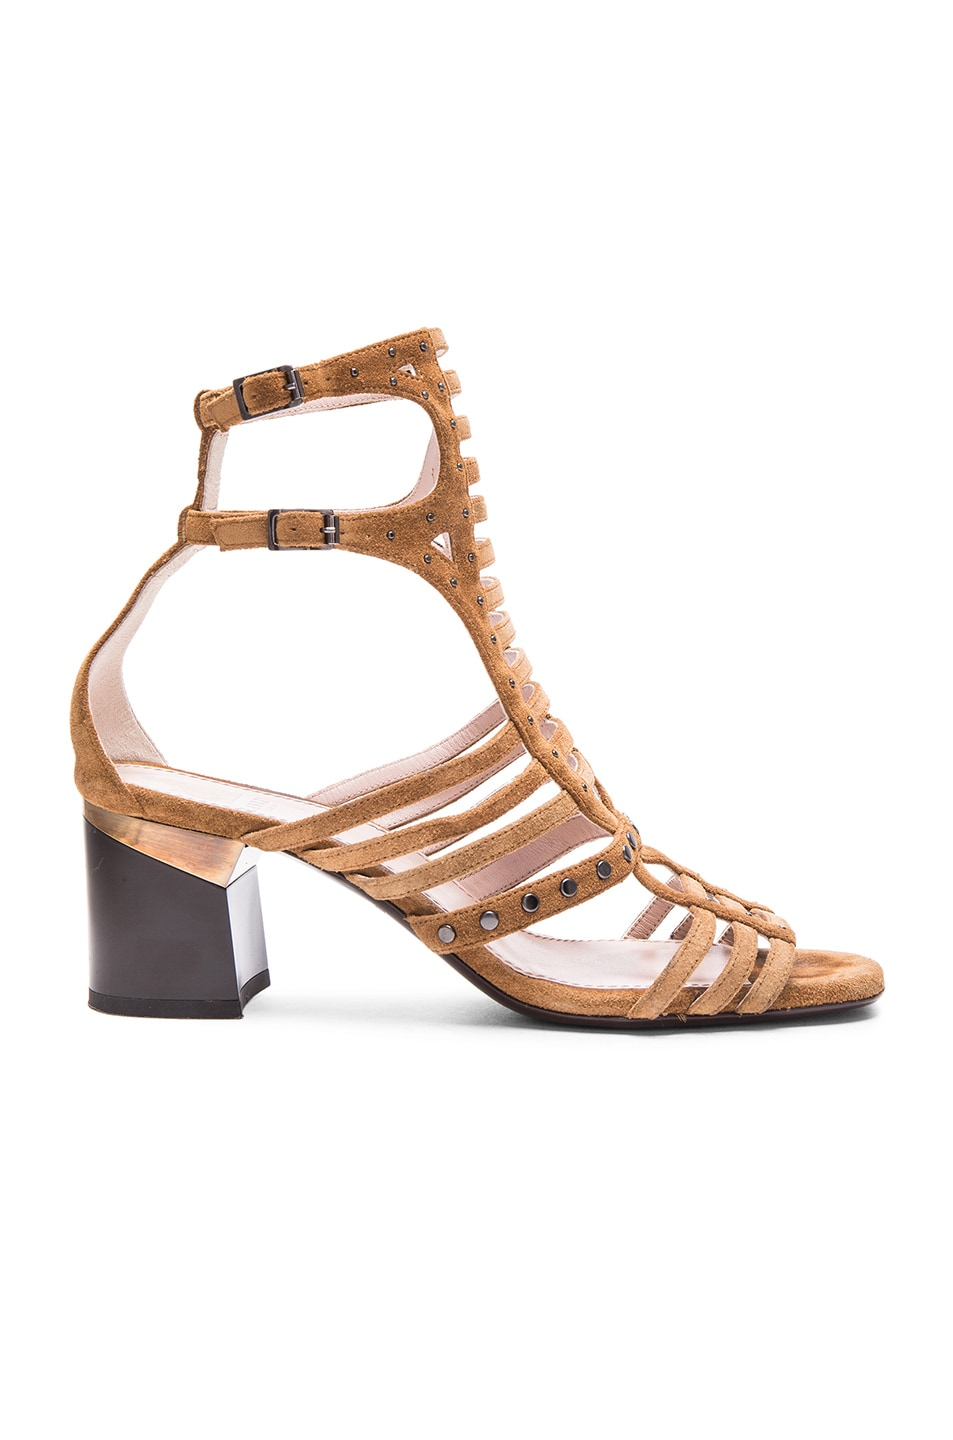 Lanvin Multistrap Platform Sandals original for sale Kexwt